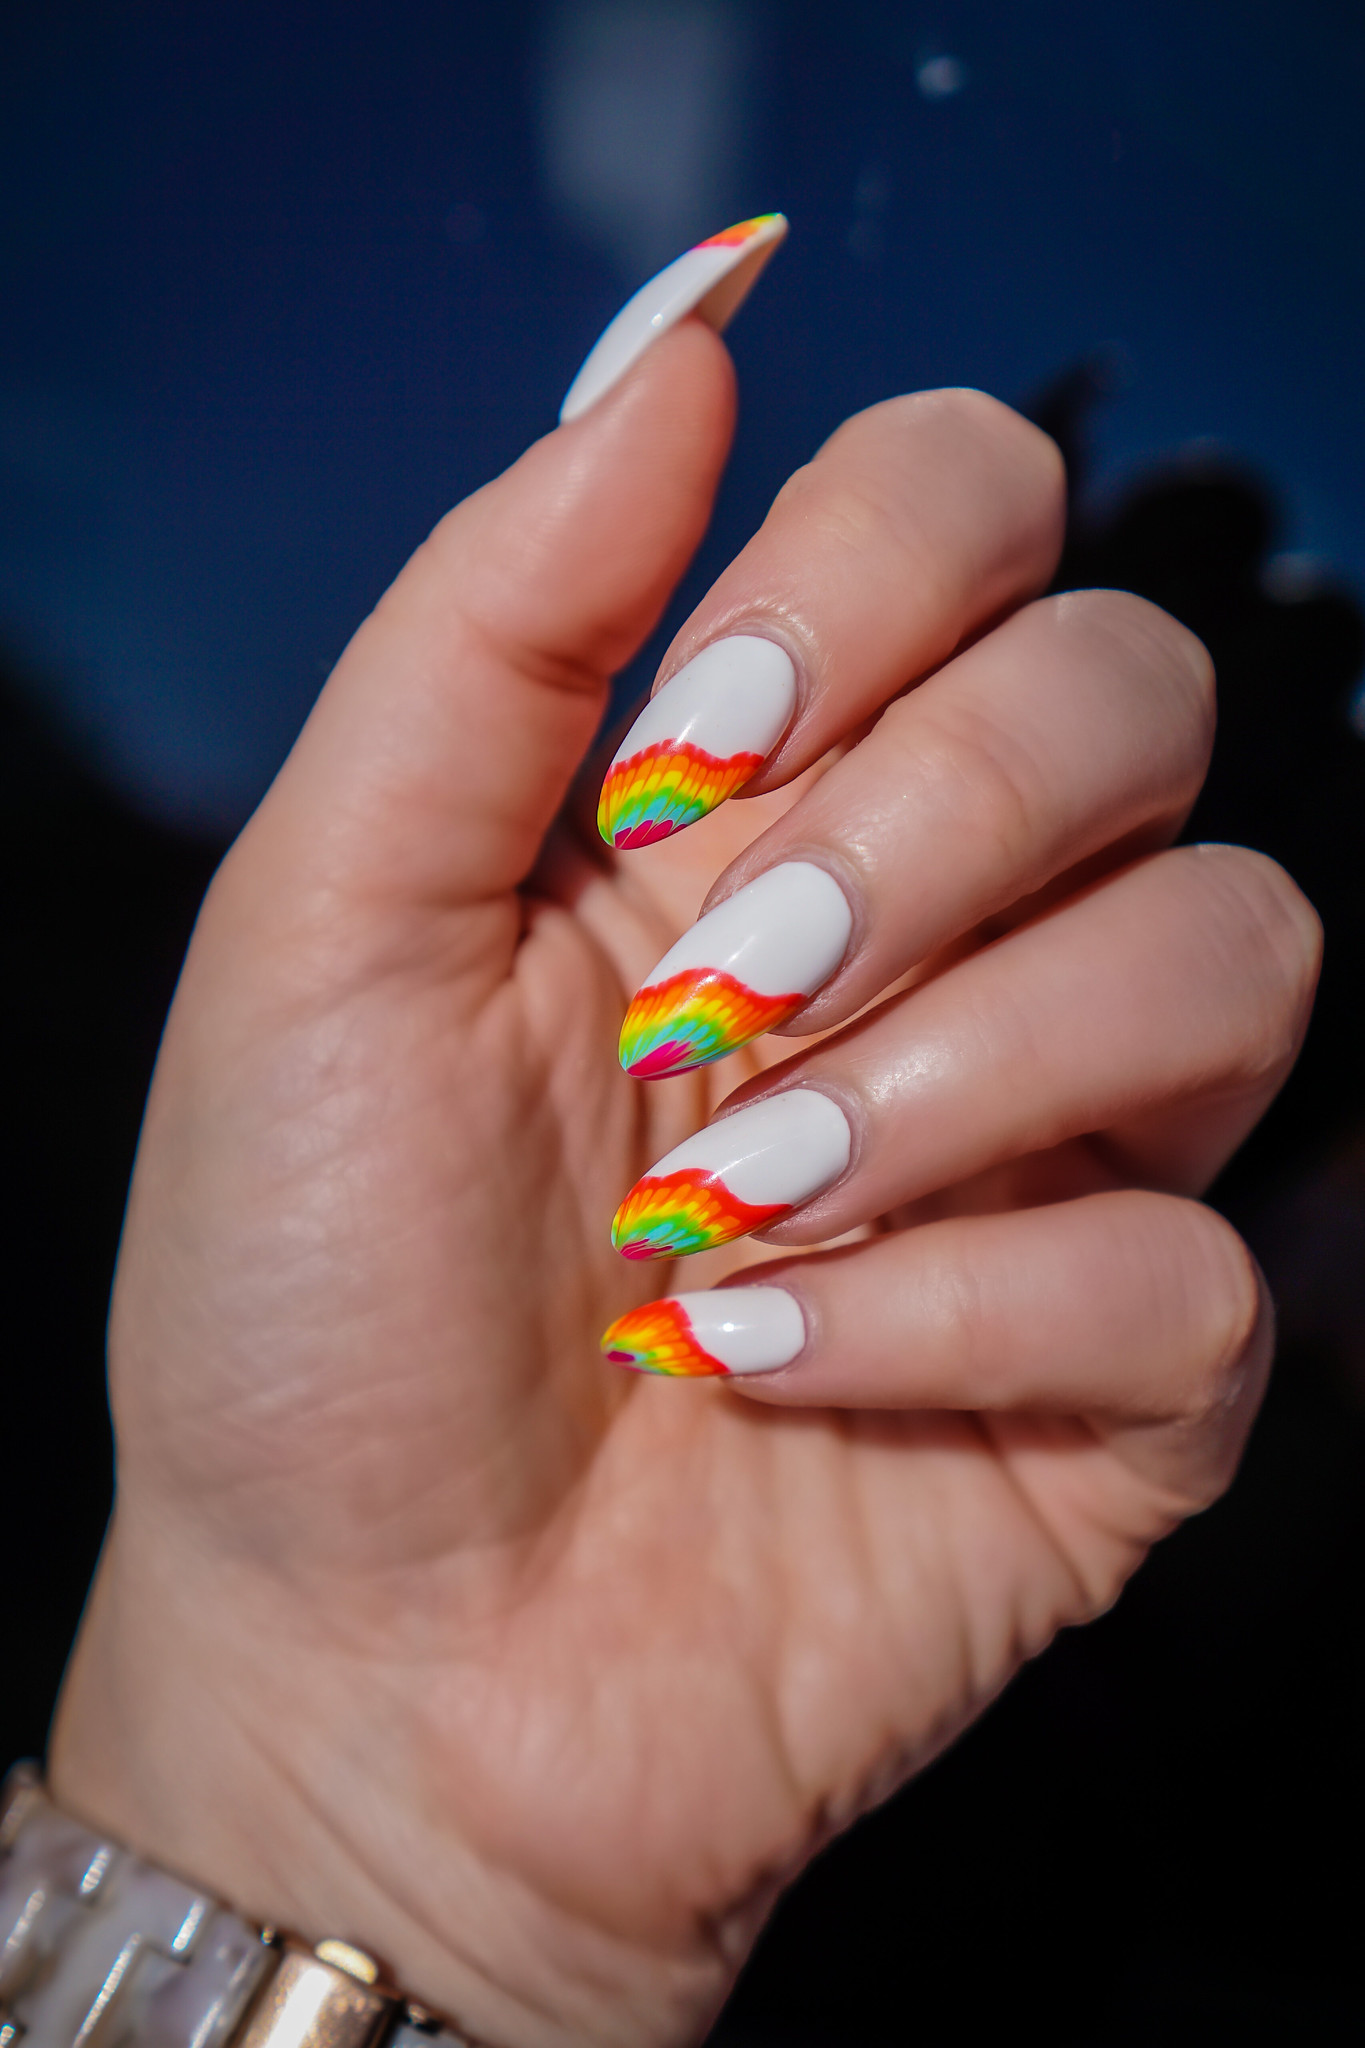 Rainbow Tie Dye Nails: Manicure of the Month   Summer Nails   Vacation Nails   Manicure Ideas   2021 Nail Ideas   Nail Art   Almond Nails   Acrylic Nails   Colorful Nails   Acrylic Nails   Nail Design